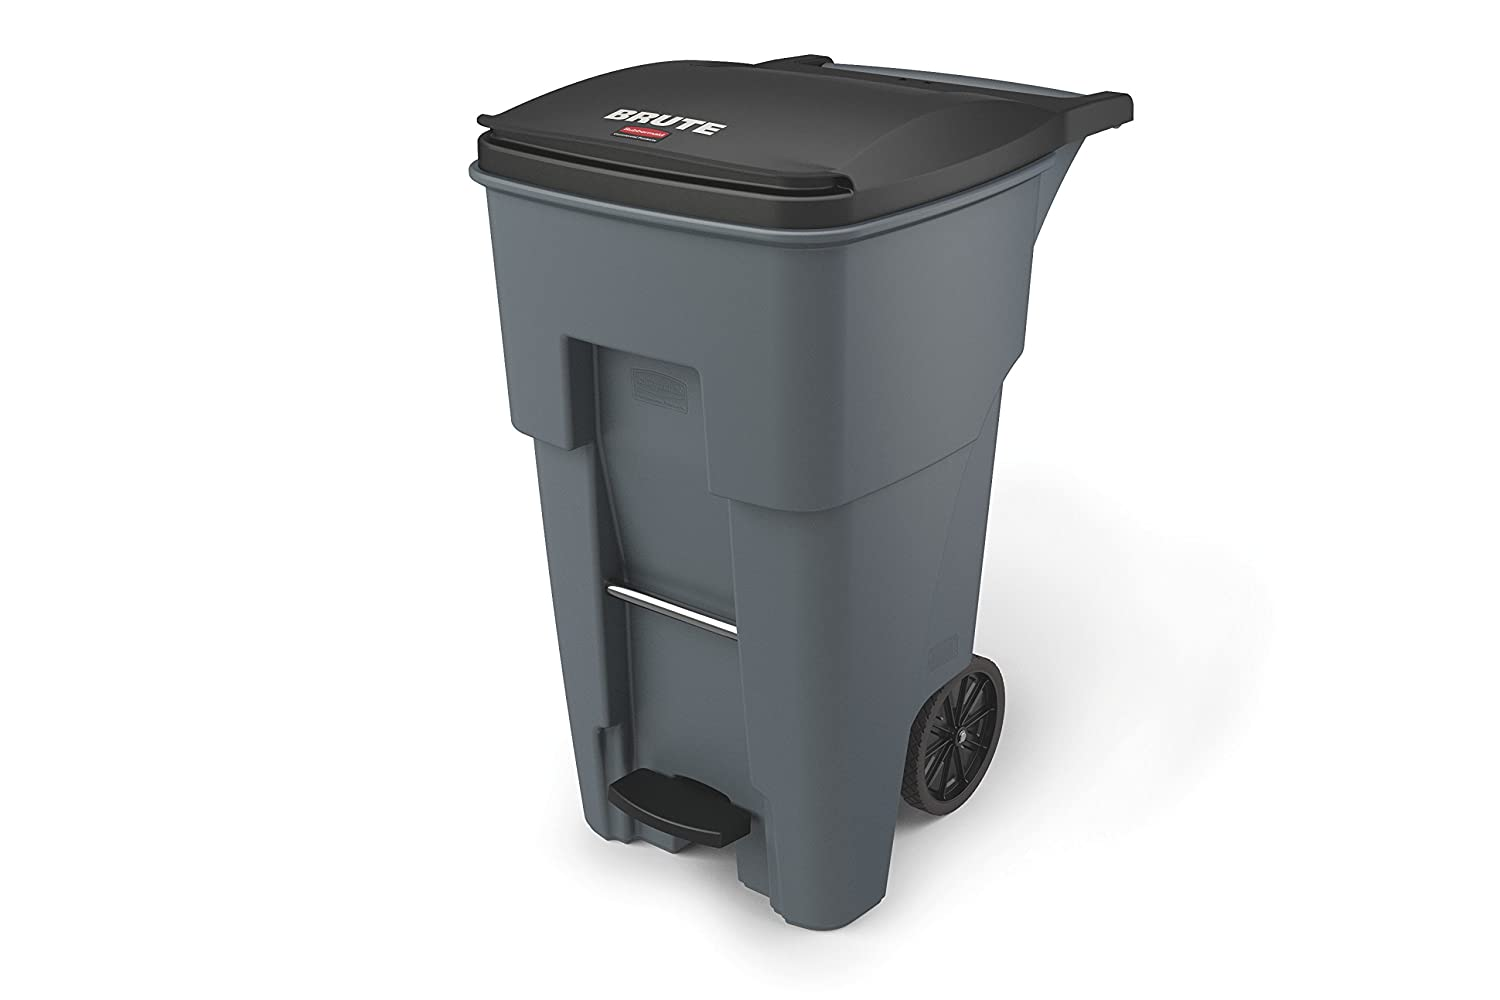 "Rubbermaid Commercial 1971968 Brute Step-On Rollout Trash Can, 65 gal/246 L, 44.740"" Height, 25.330"" Width, Gray"